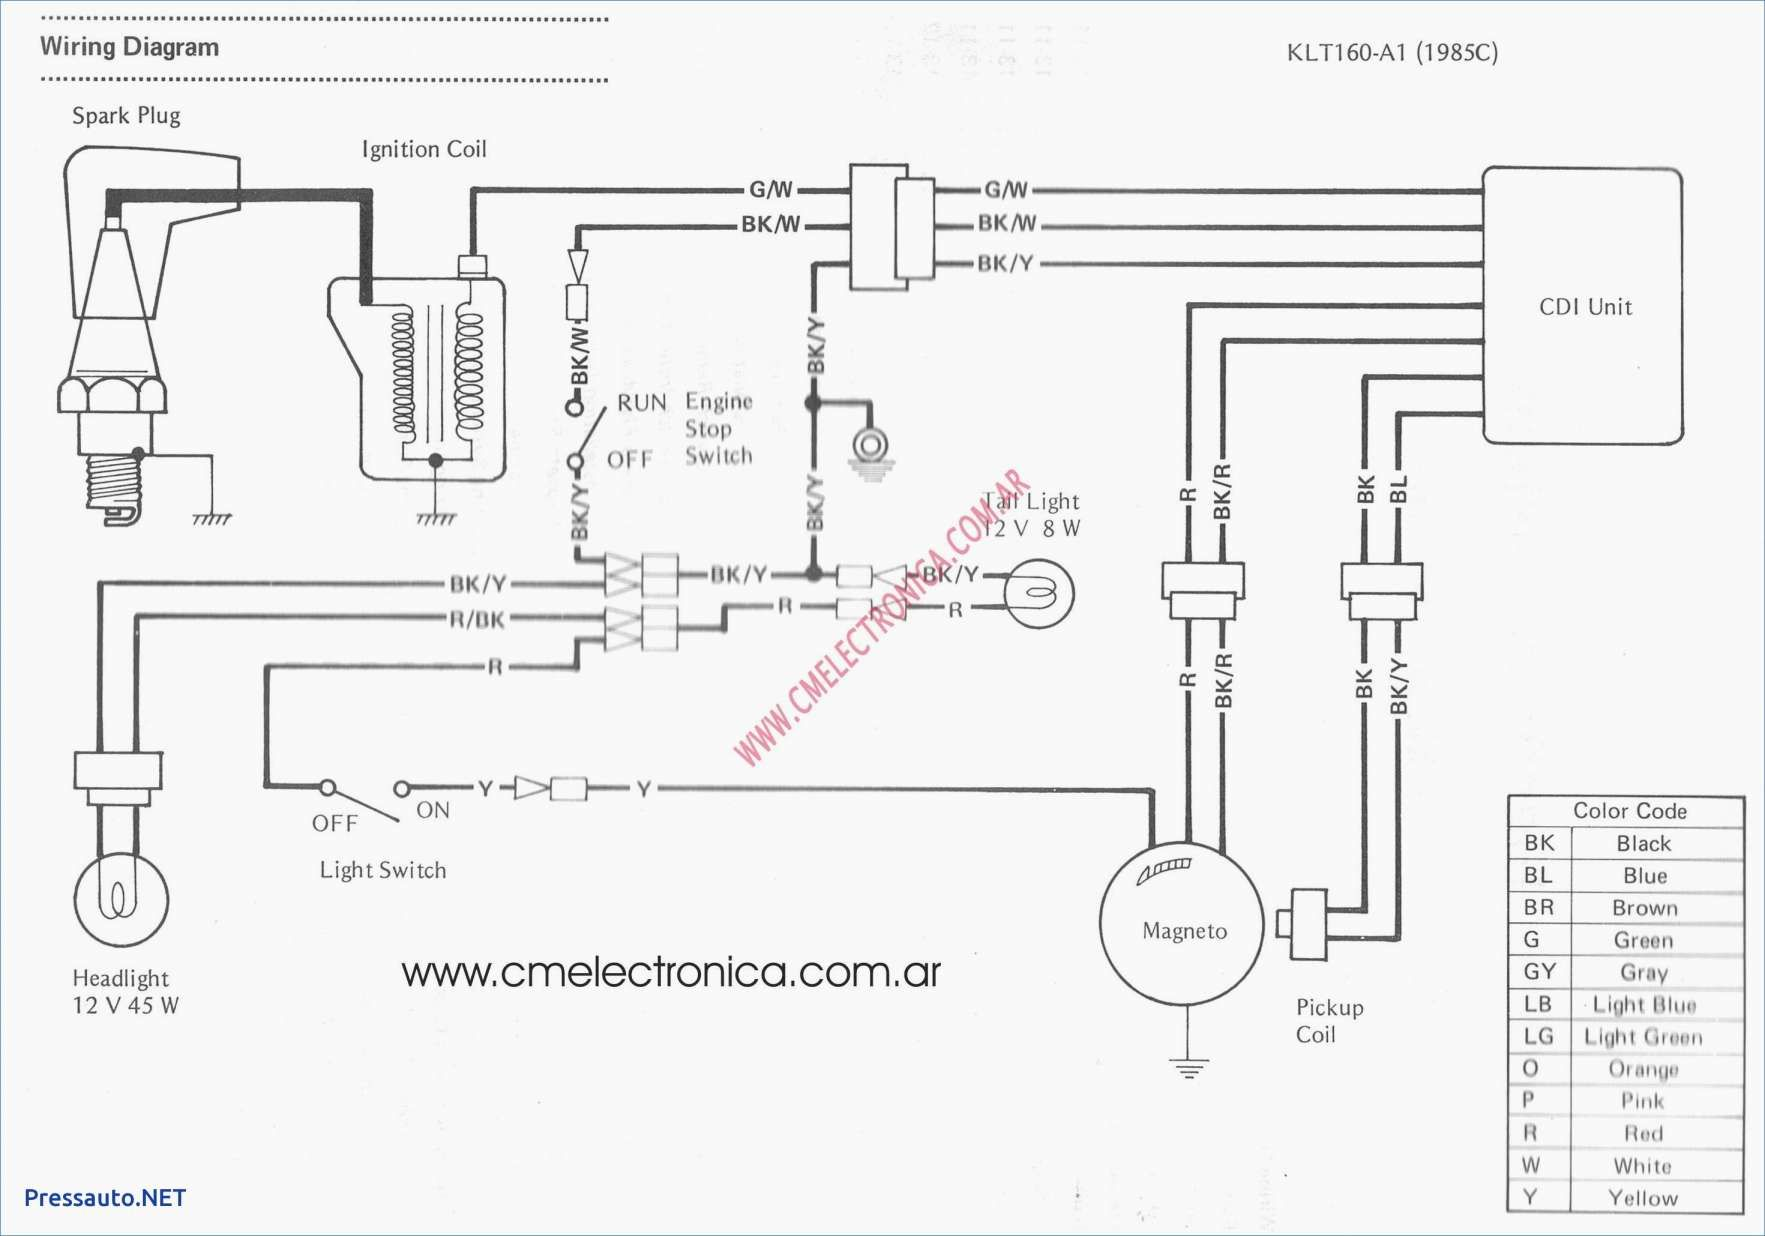 DIAGRAM] Mercruiser 165 Wiring Diagram FULL Version HD Quality Wiring  Diagram - EZDIAGRAM.SANITACALABRIA.ITBest Diagram Database - sanitacalabria.it